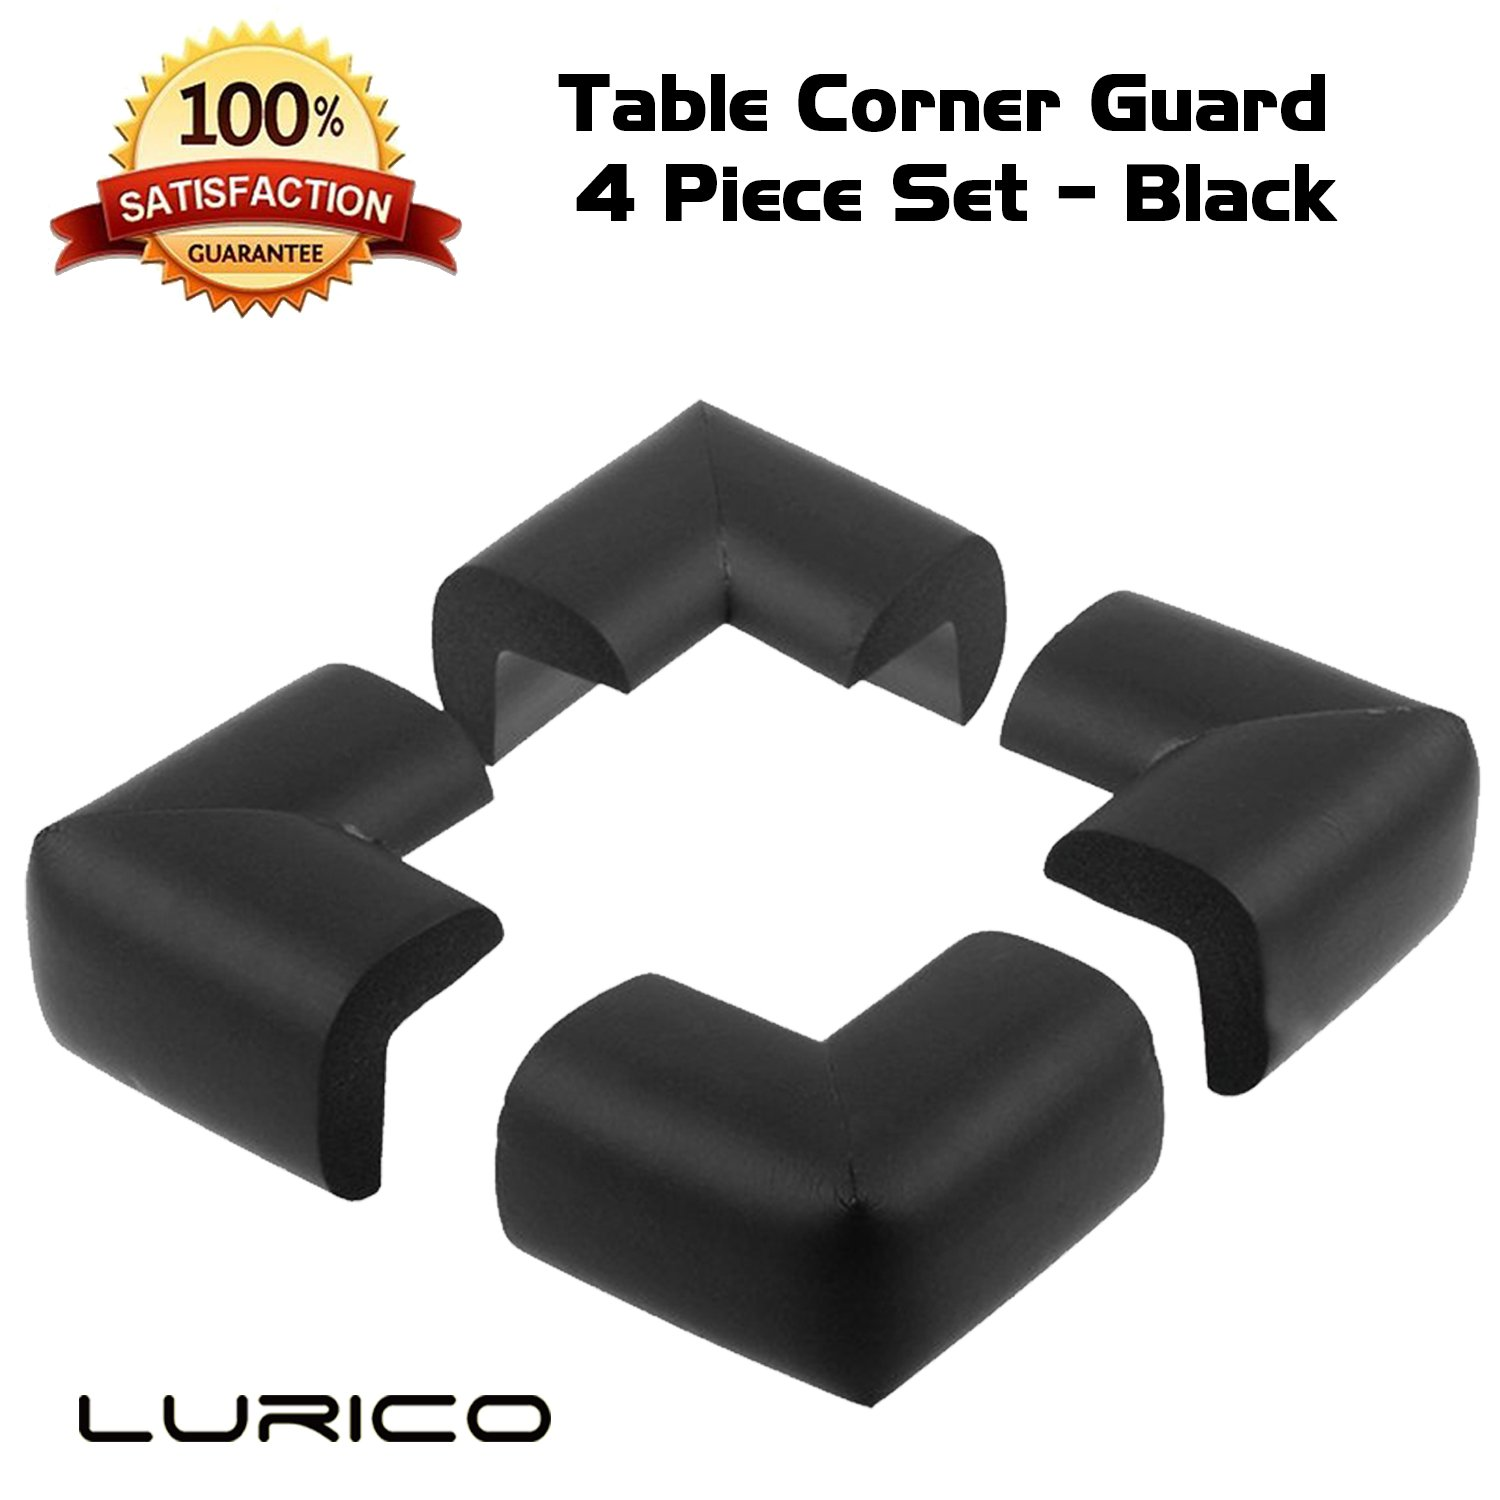 LURICO 4 Pieces Set Corner Protector | Baby Proofing Table Corner Bumper Guard | Child Safety Furniture Fireplace Corner Edge Guards | Soft Foam | ...